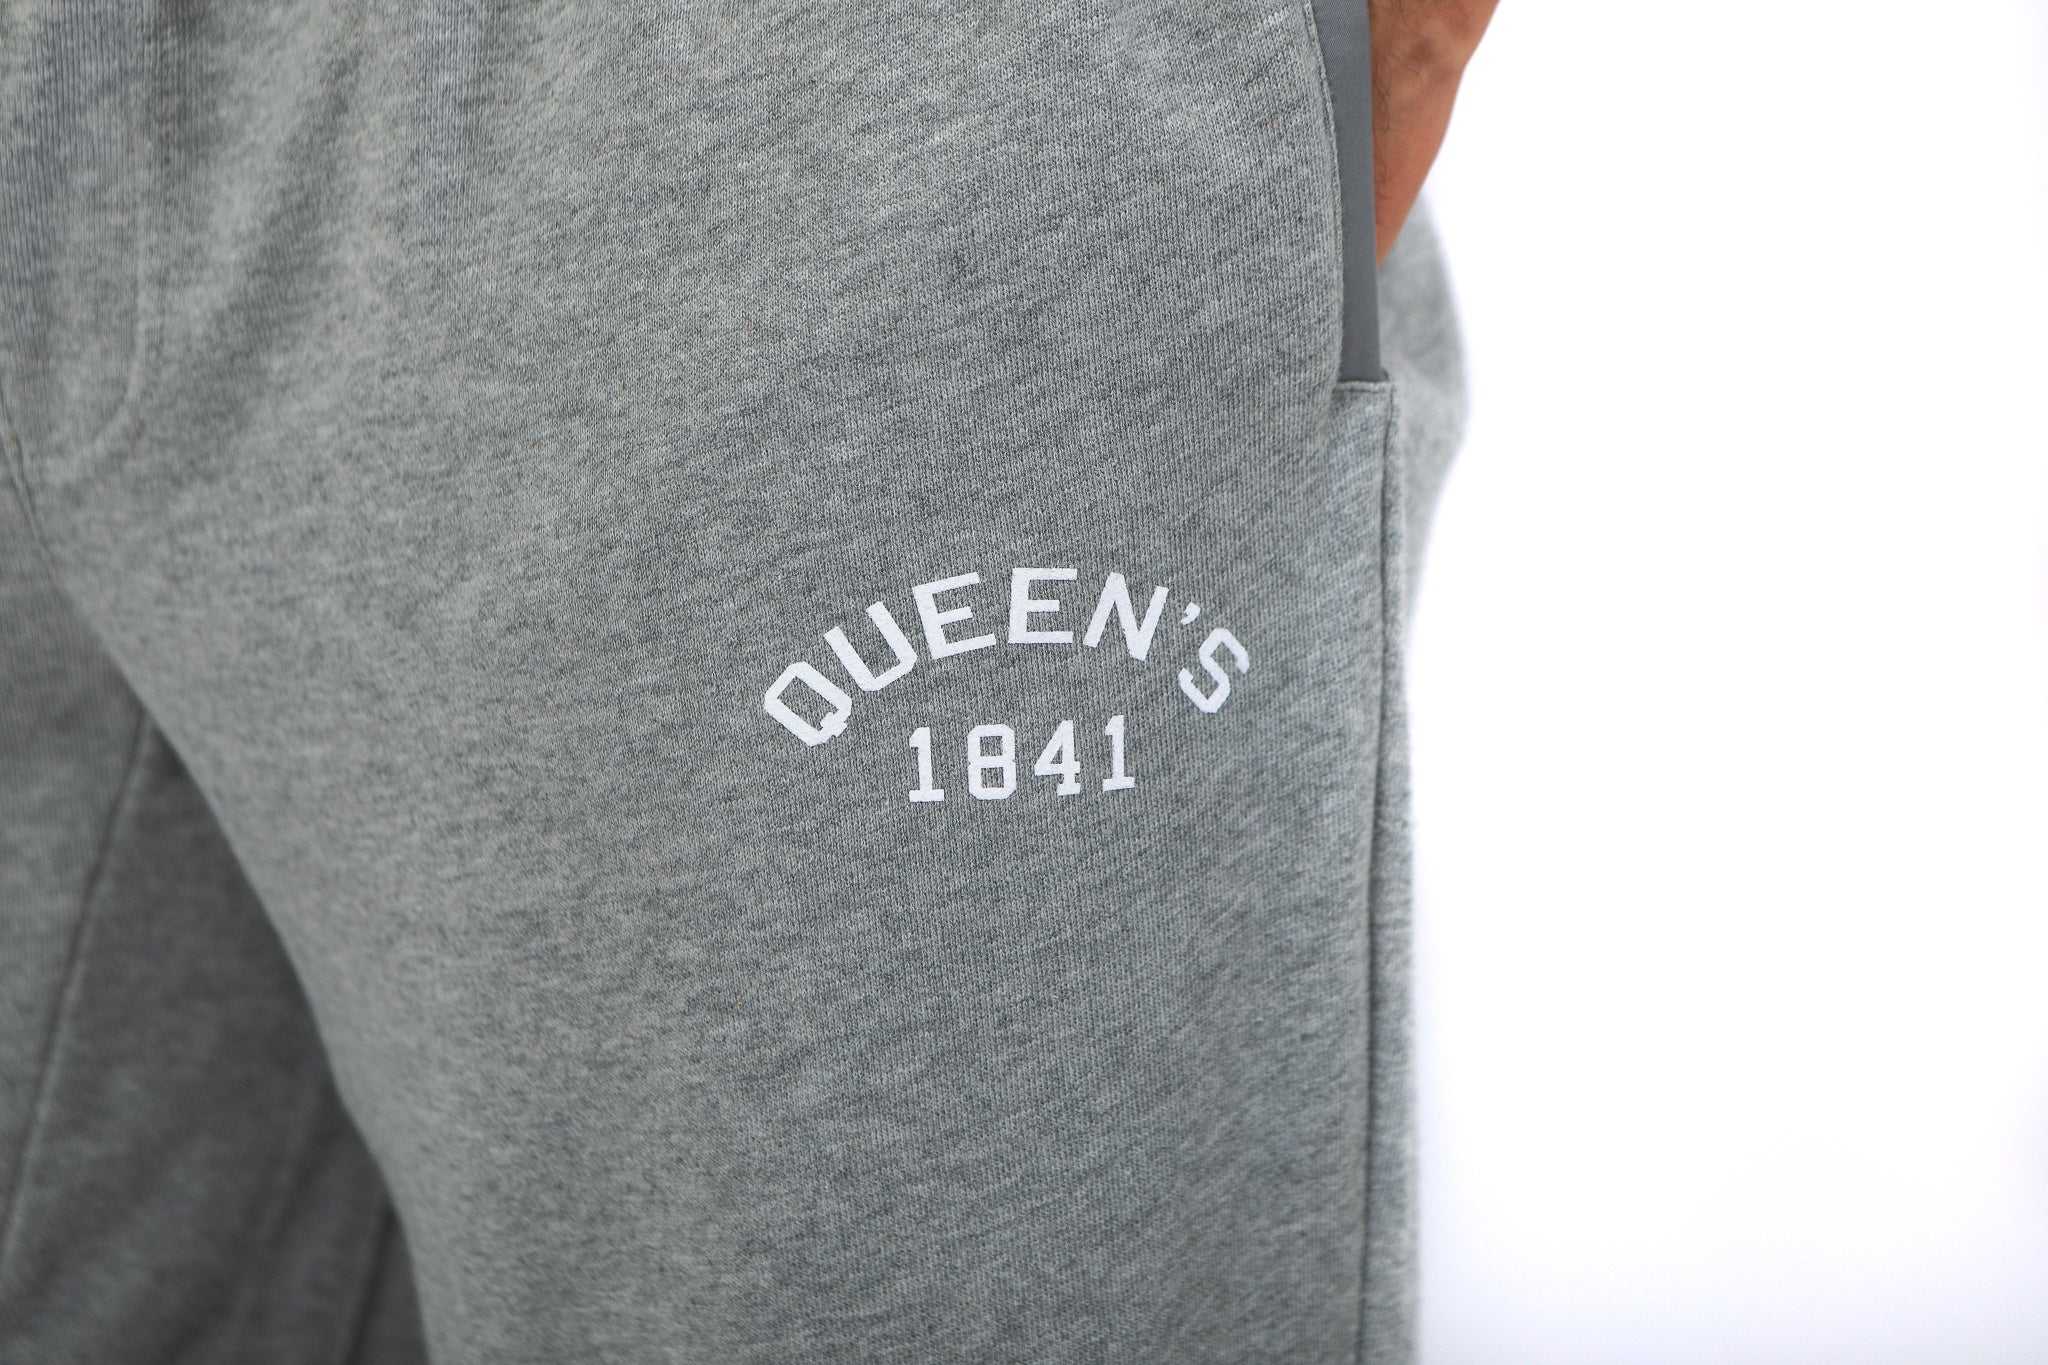 Close up of white Queen's logo on grey sweatpants